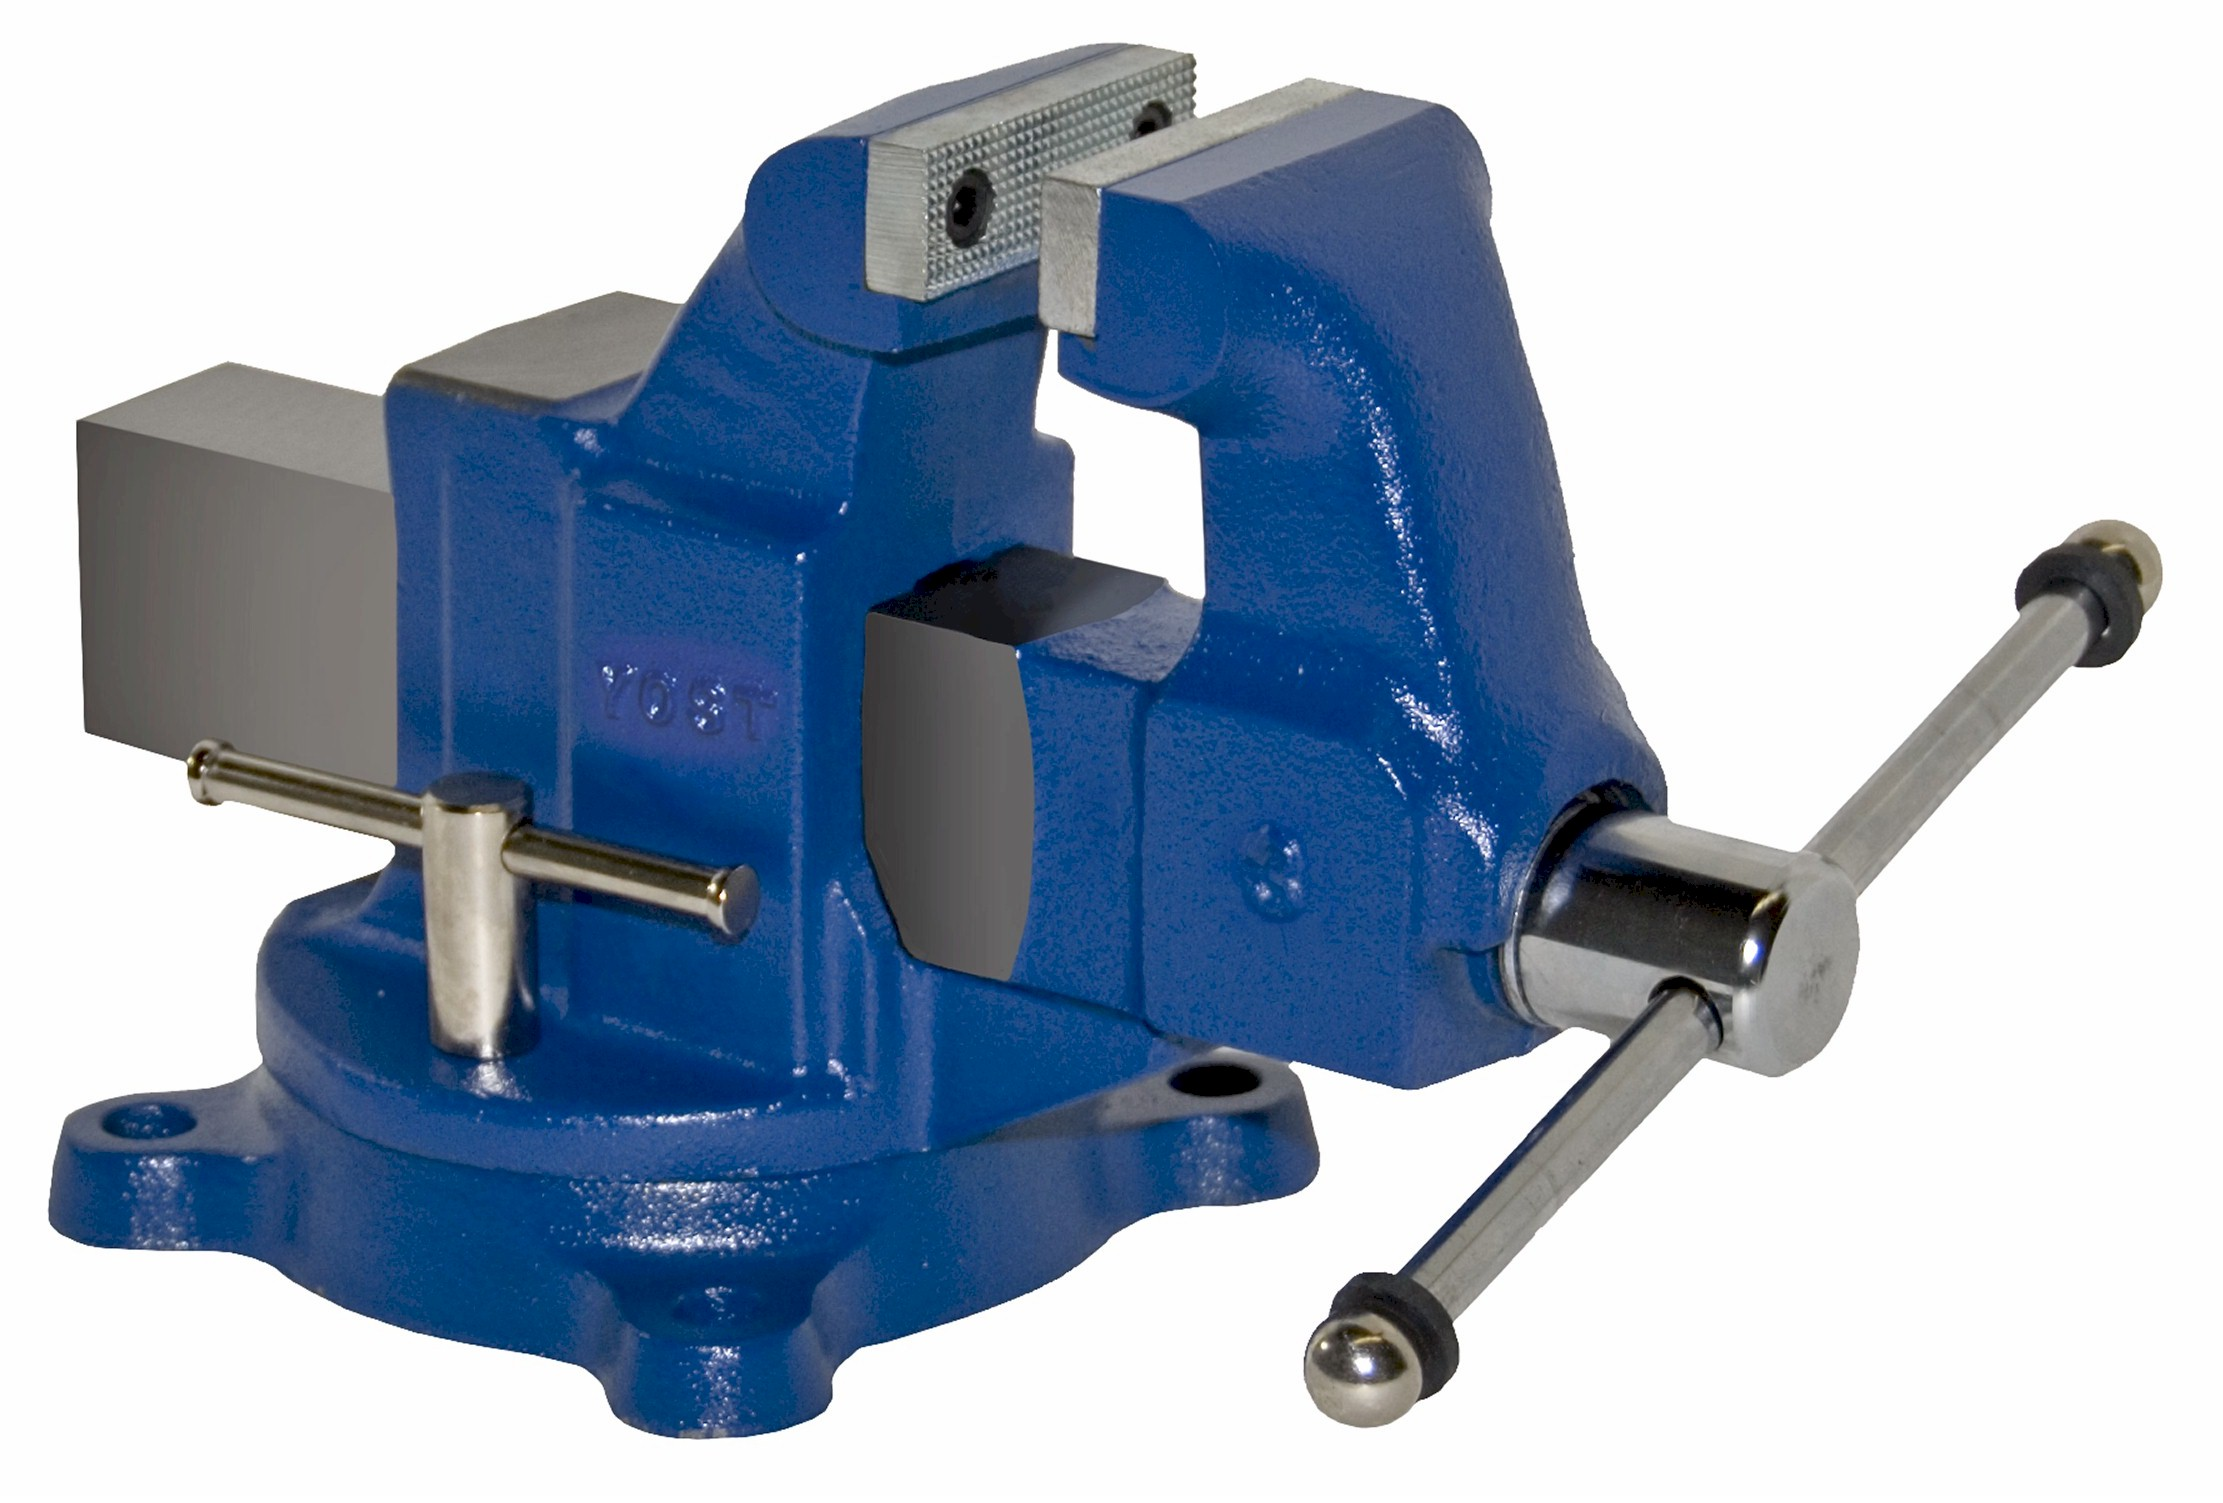 Usab2c Heavy Duty Industrial Machinists 39 Bench American Made Vise Swivel Base Product Details